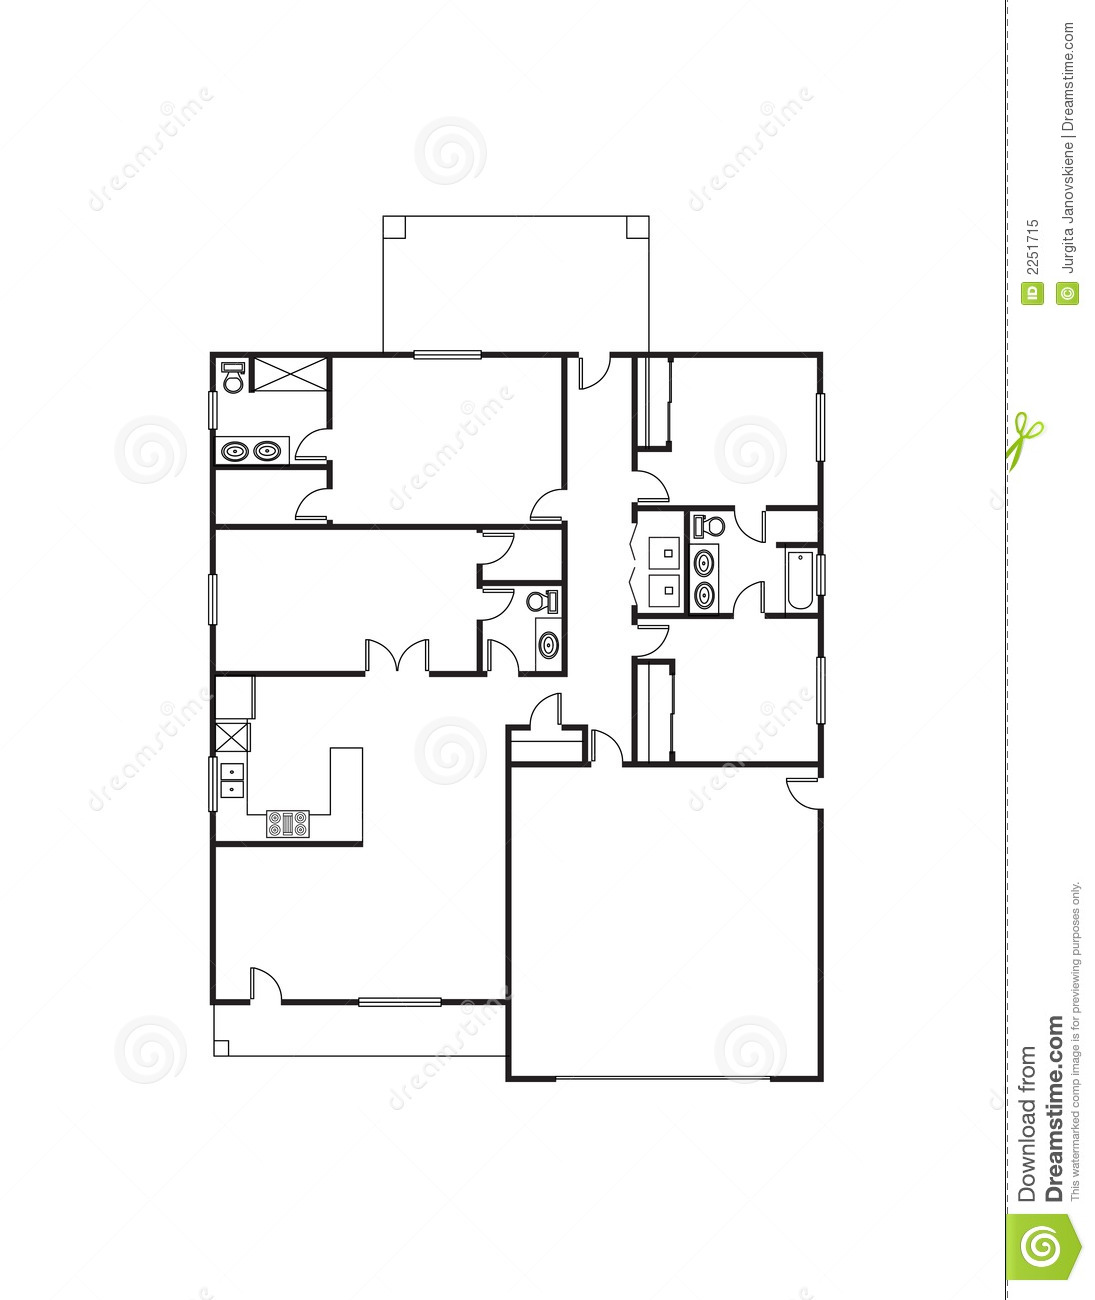 House plan royalty free stock photo image 2251715 for Stock home plans